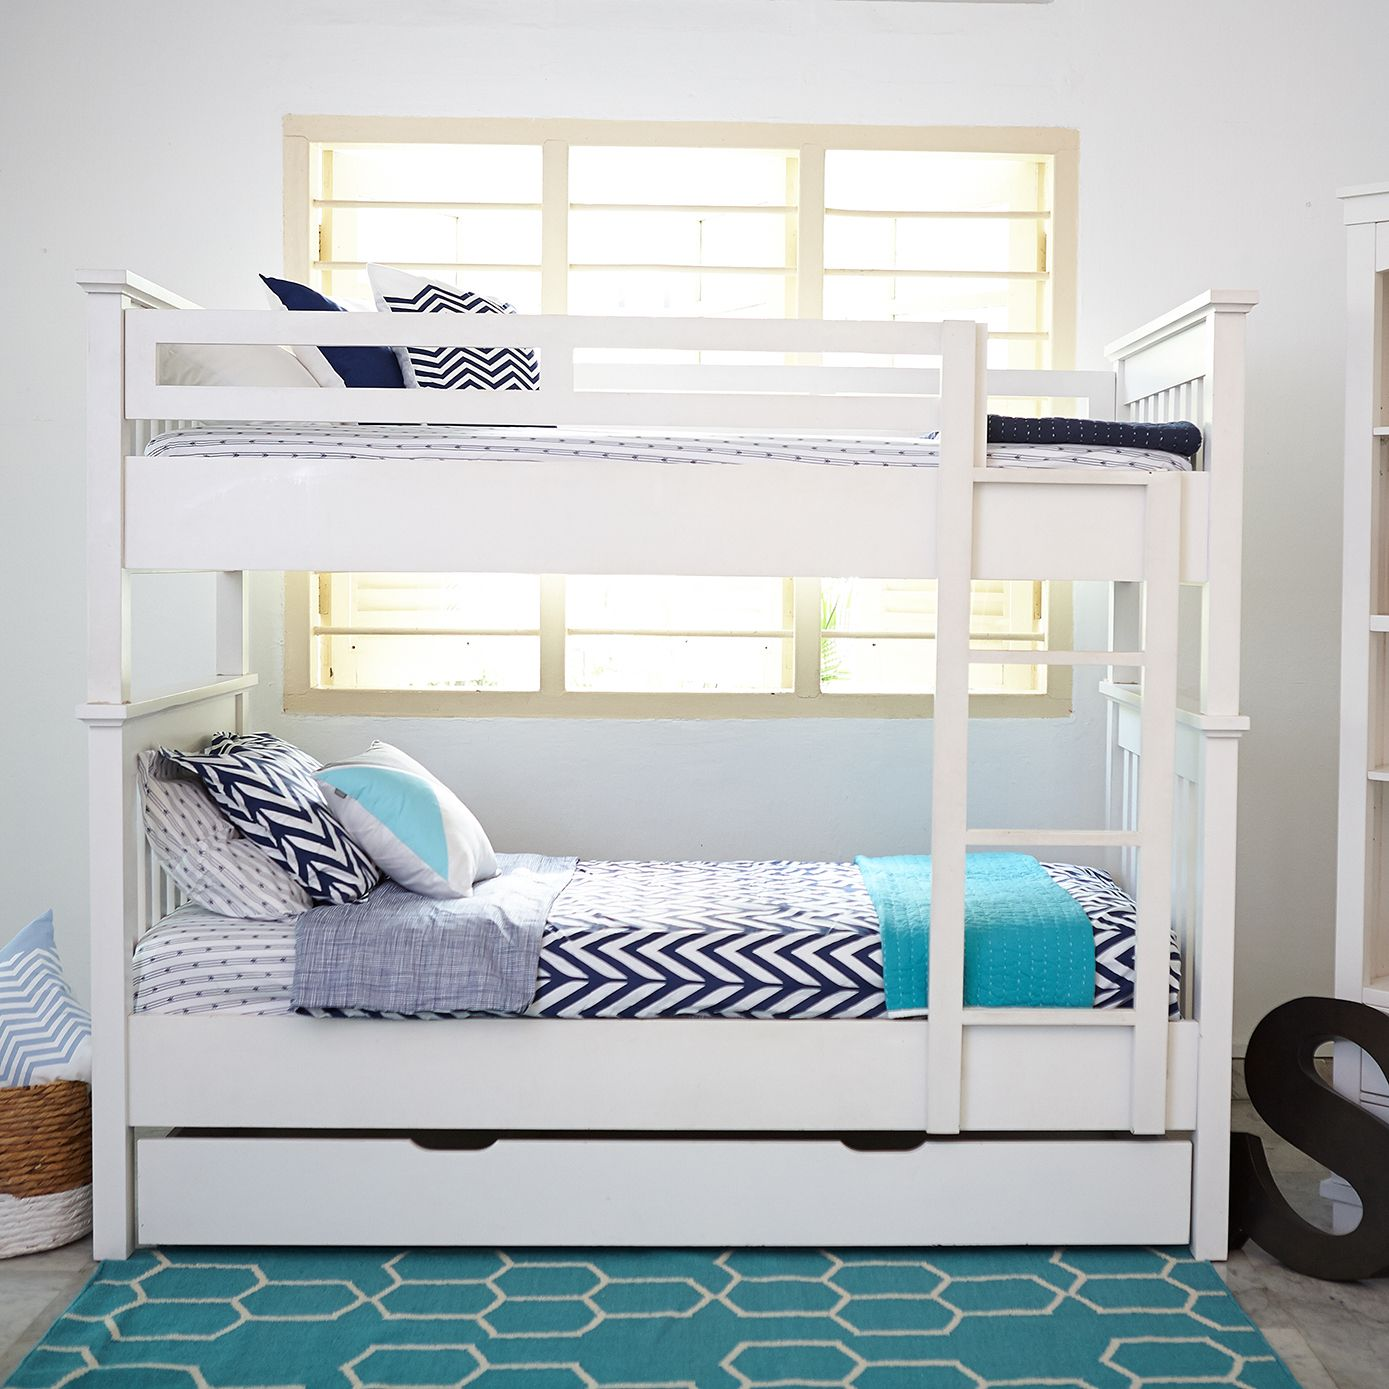 Kids Double Decker Bed For Sale Ni Night Offering Best Deals On Children Bunk Bed And Double